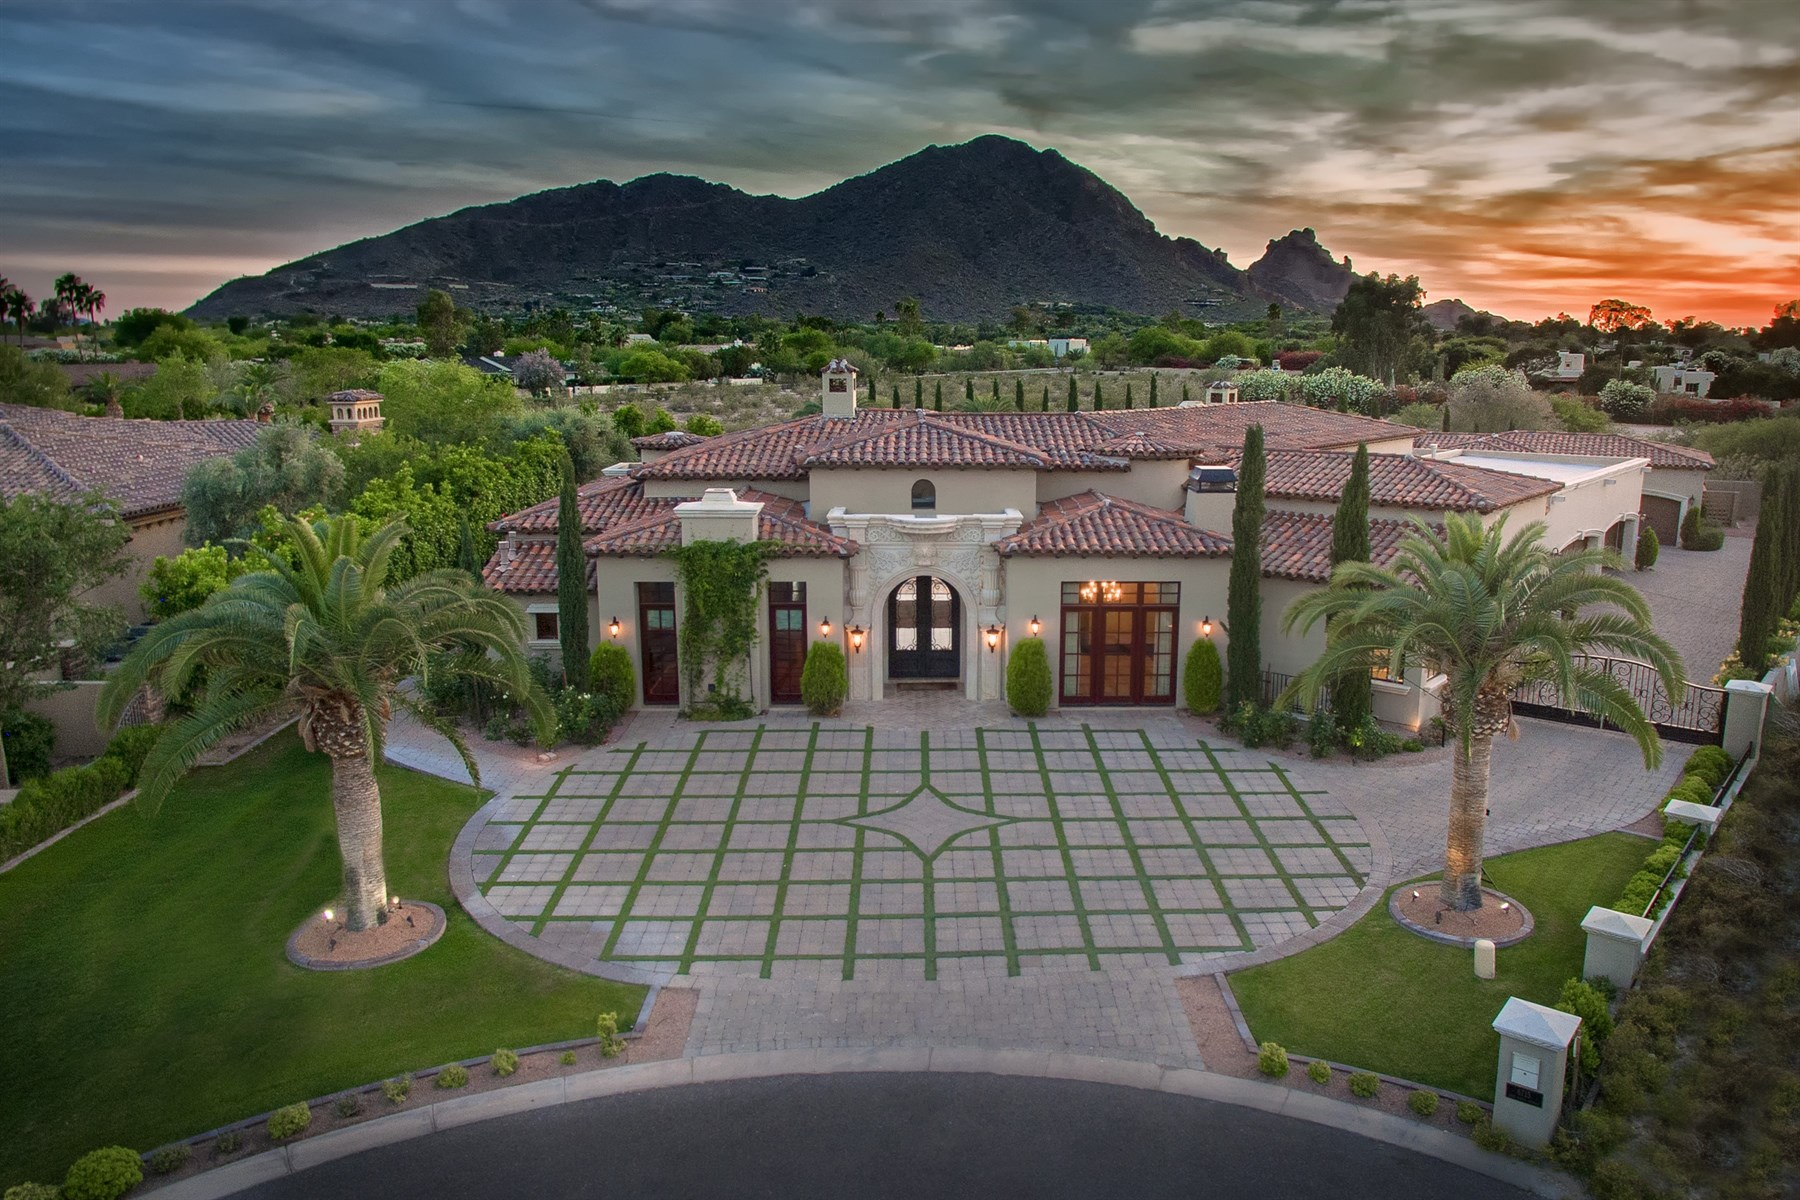 Villa per Vendita alle ore Beautiful Paradise Valley home 6715 E Rovey Ave Paradise Valley, Arizona, 85253 Stati Uniti